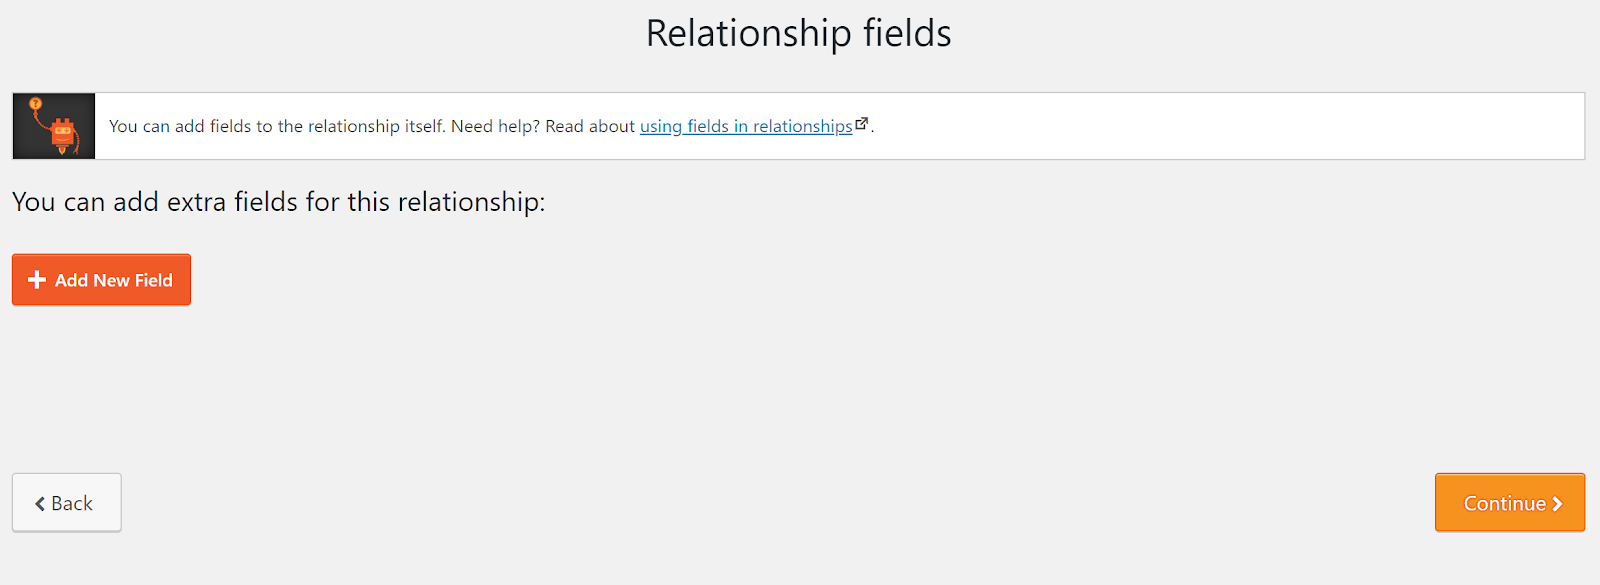 Step 4: Relationship Fields